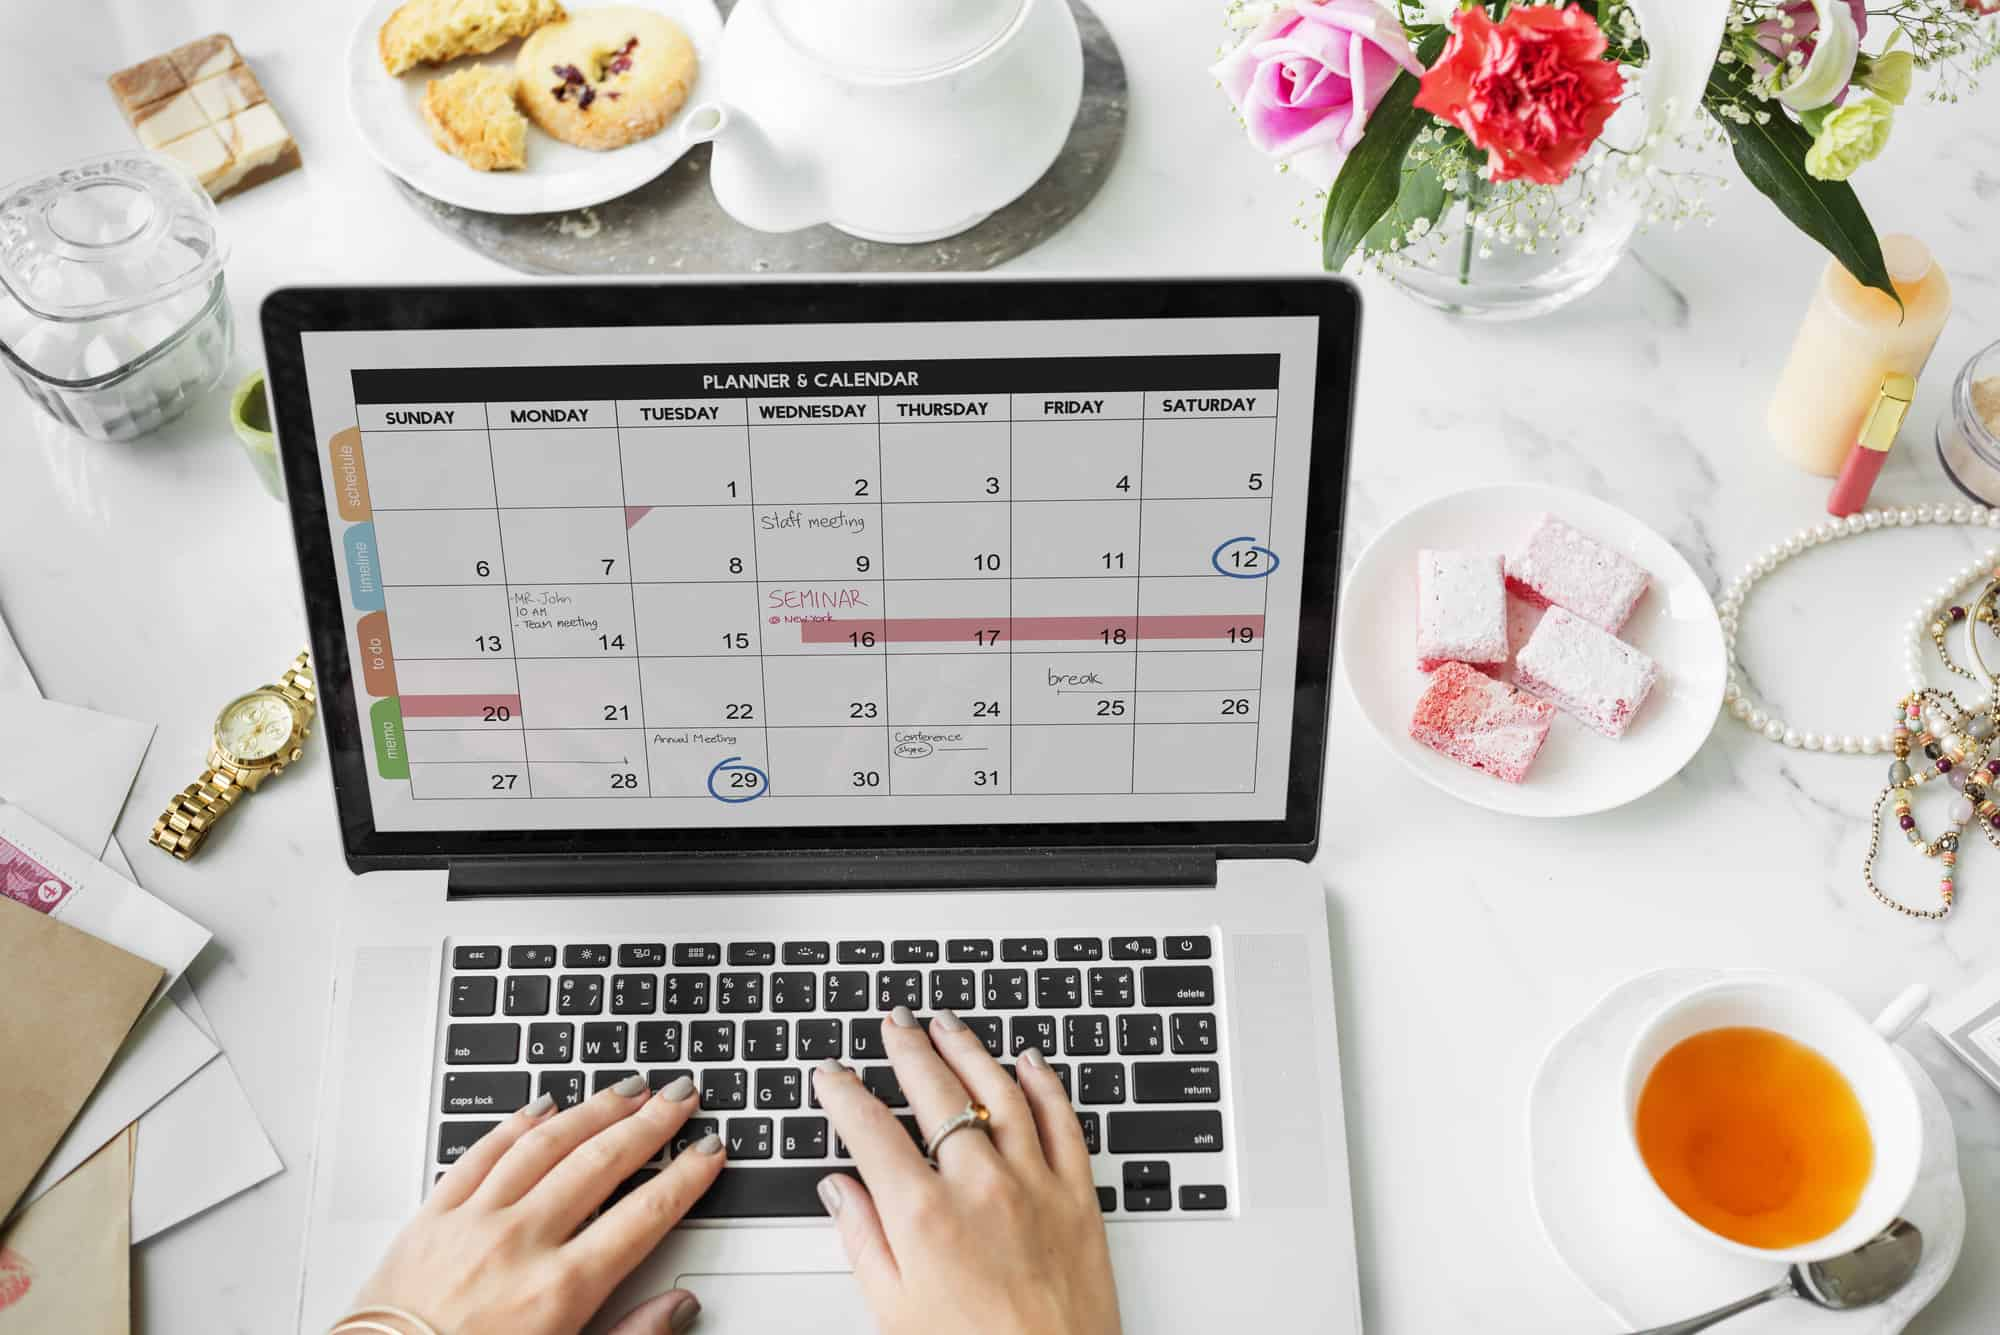 Woman looking at schedule on laptop